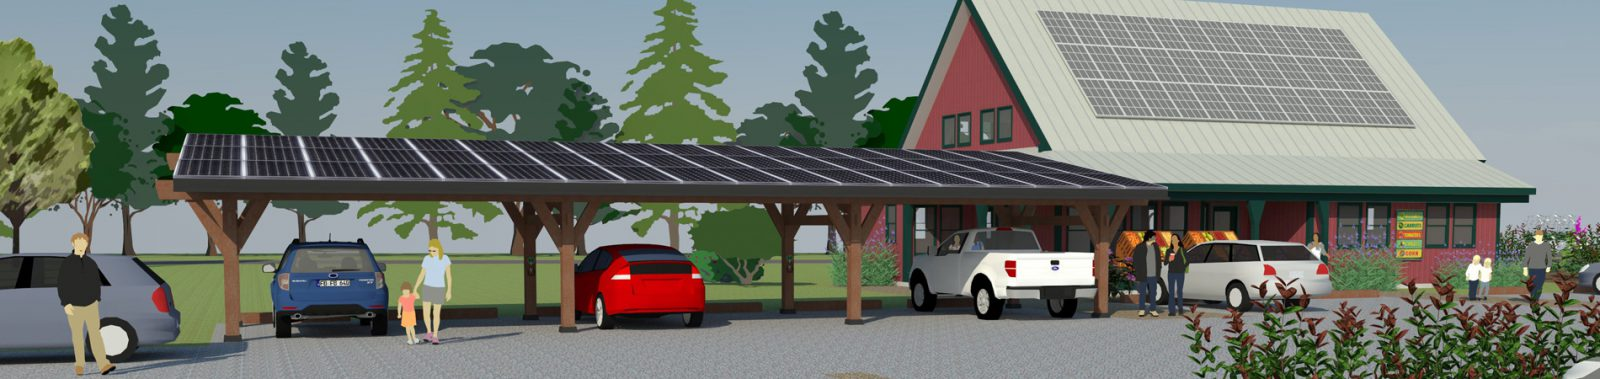 Canopy Hero Image Small Business Solar Carport